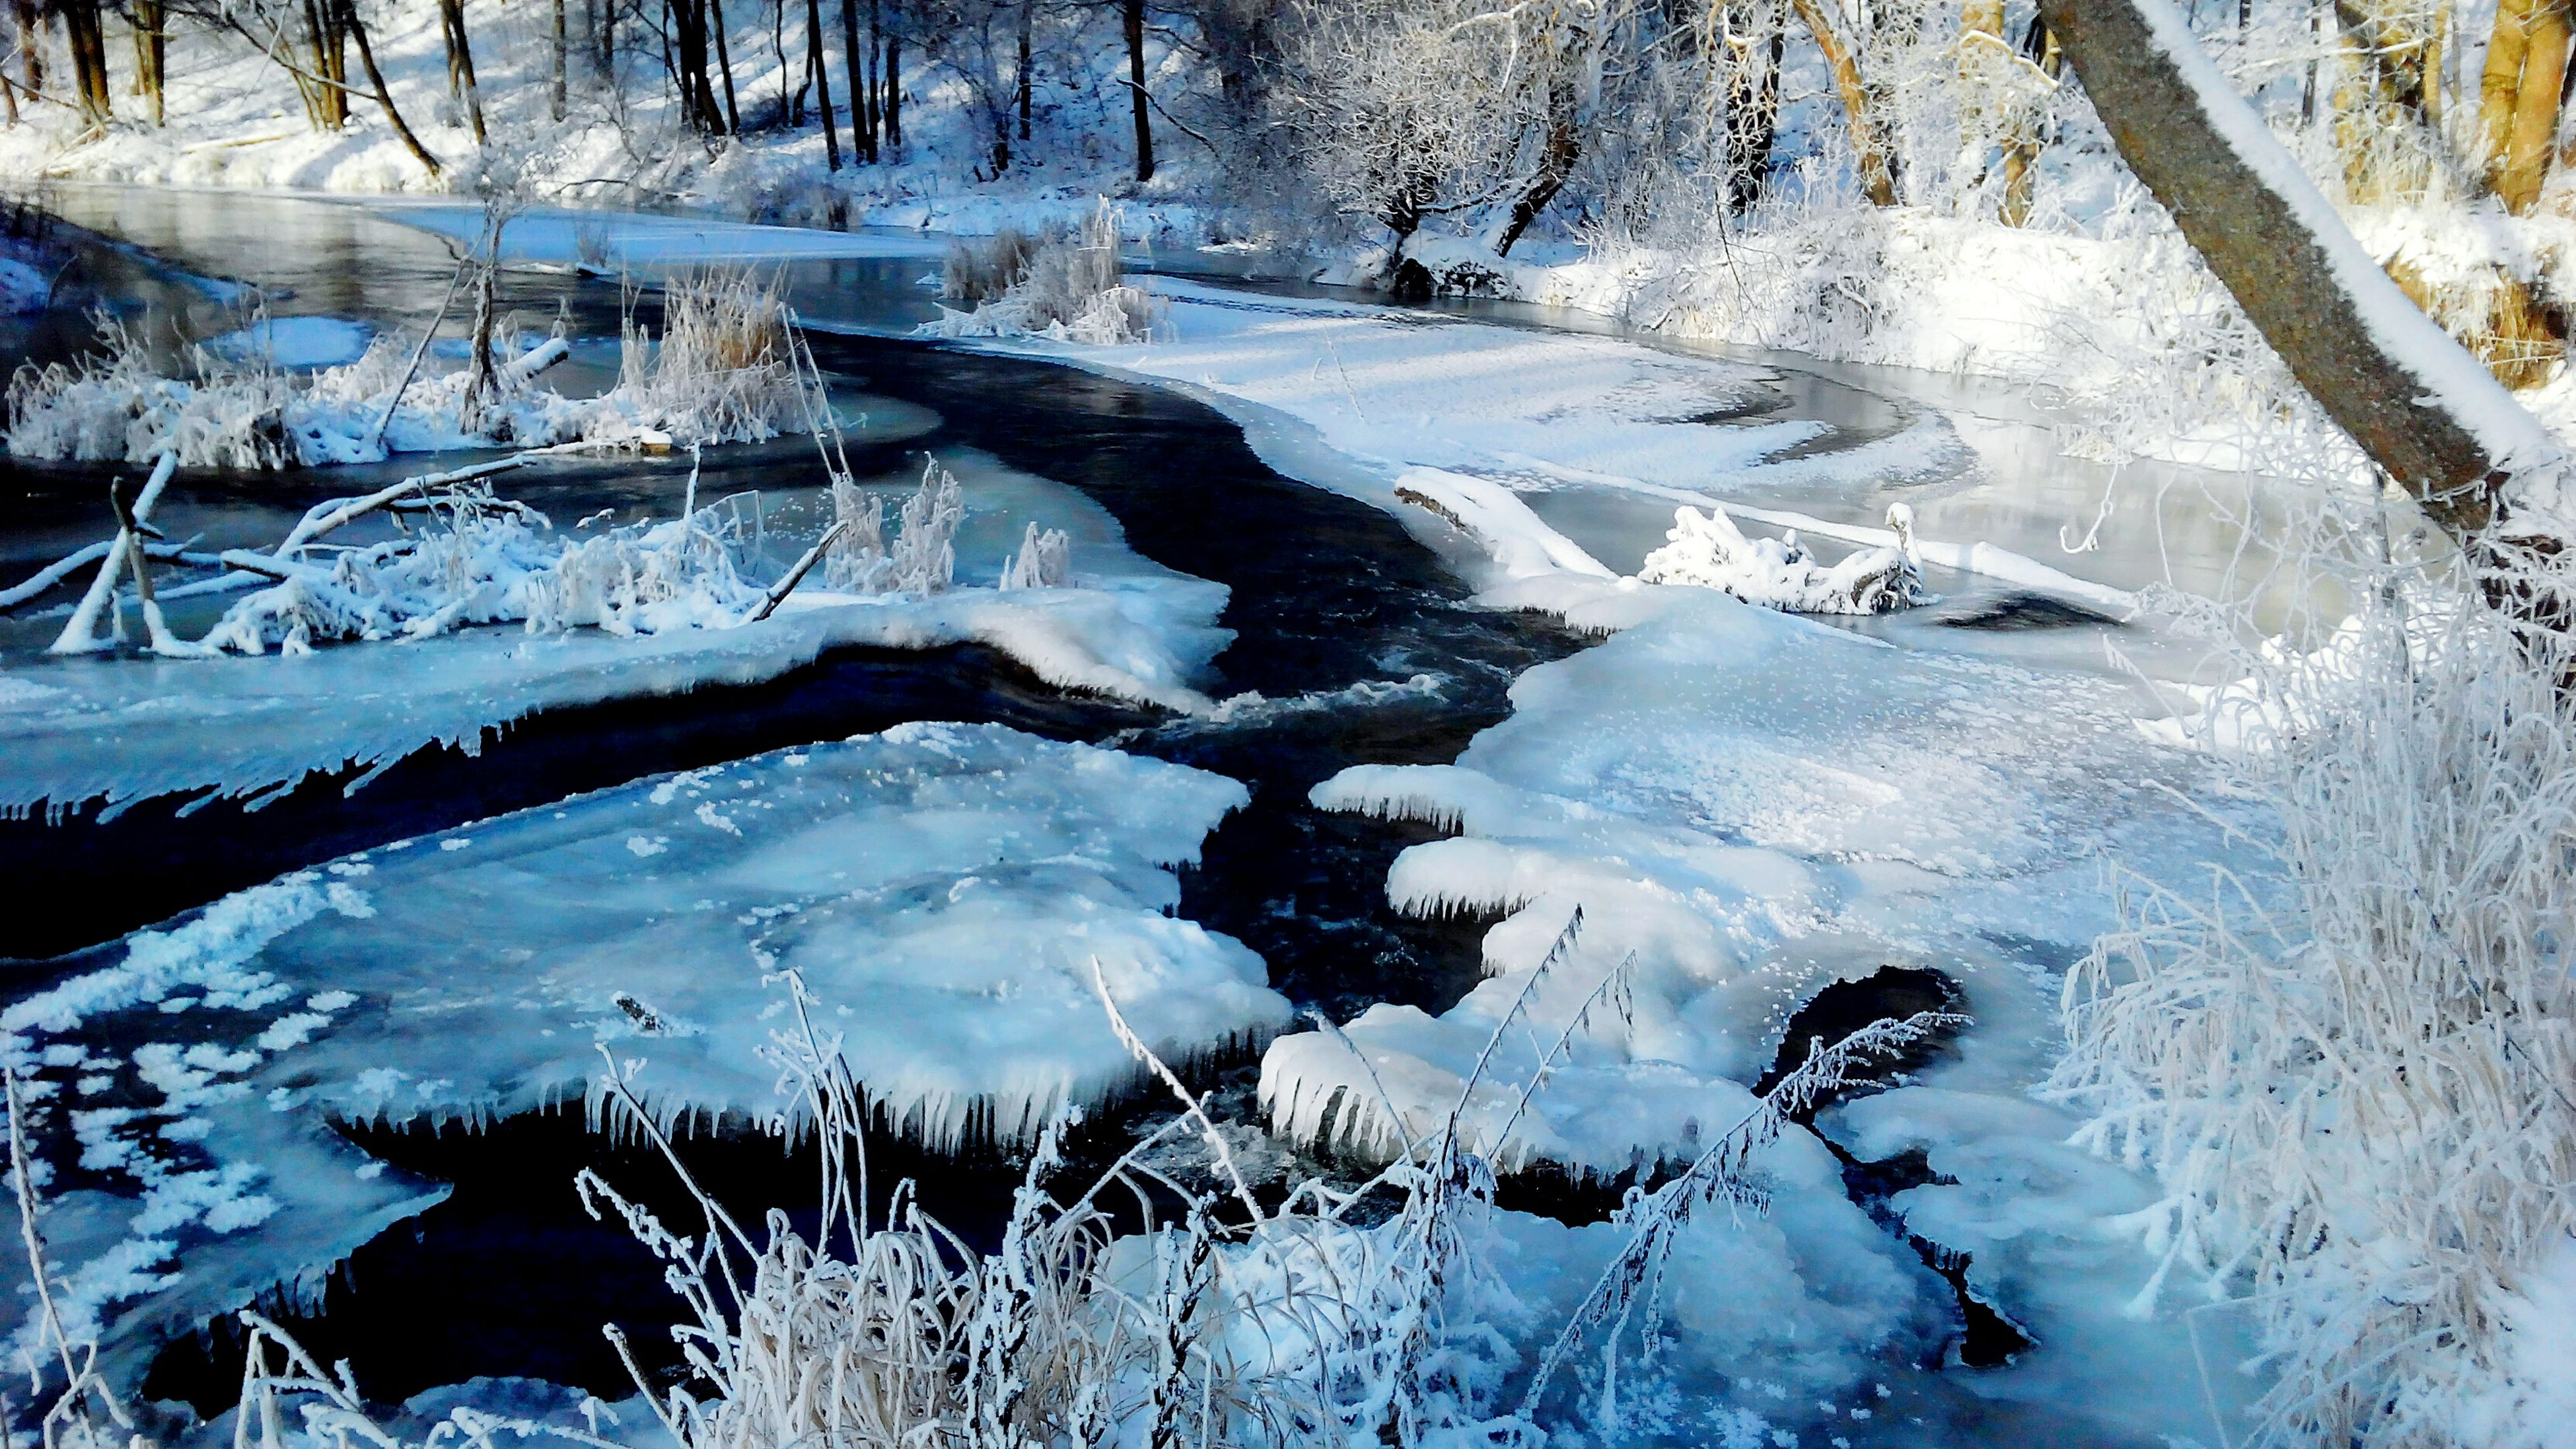 winter, snow, cold temperature, tranquility, frozen, tranquil scene, season, nature, beauty in nature, forest, water, ice, scenics, weather, tree, bare tree, lake, non-urban scene, covering, woodland